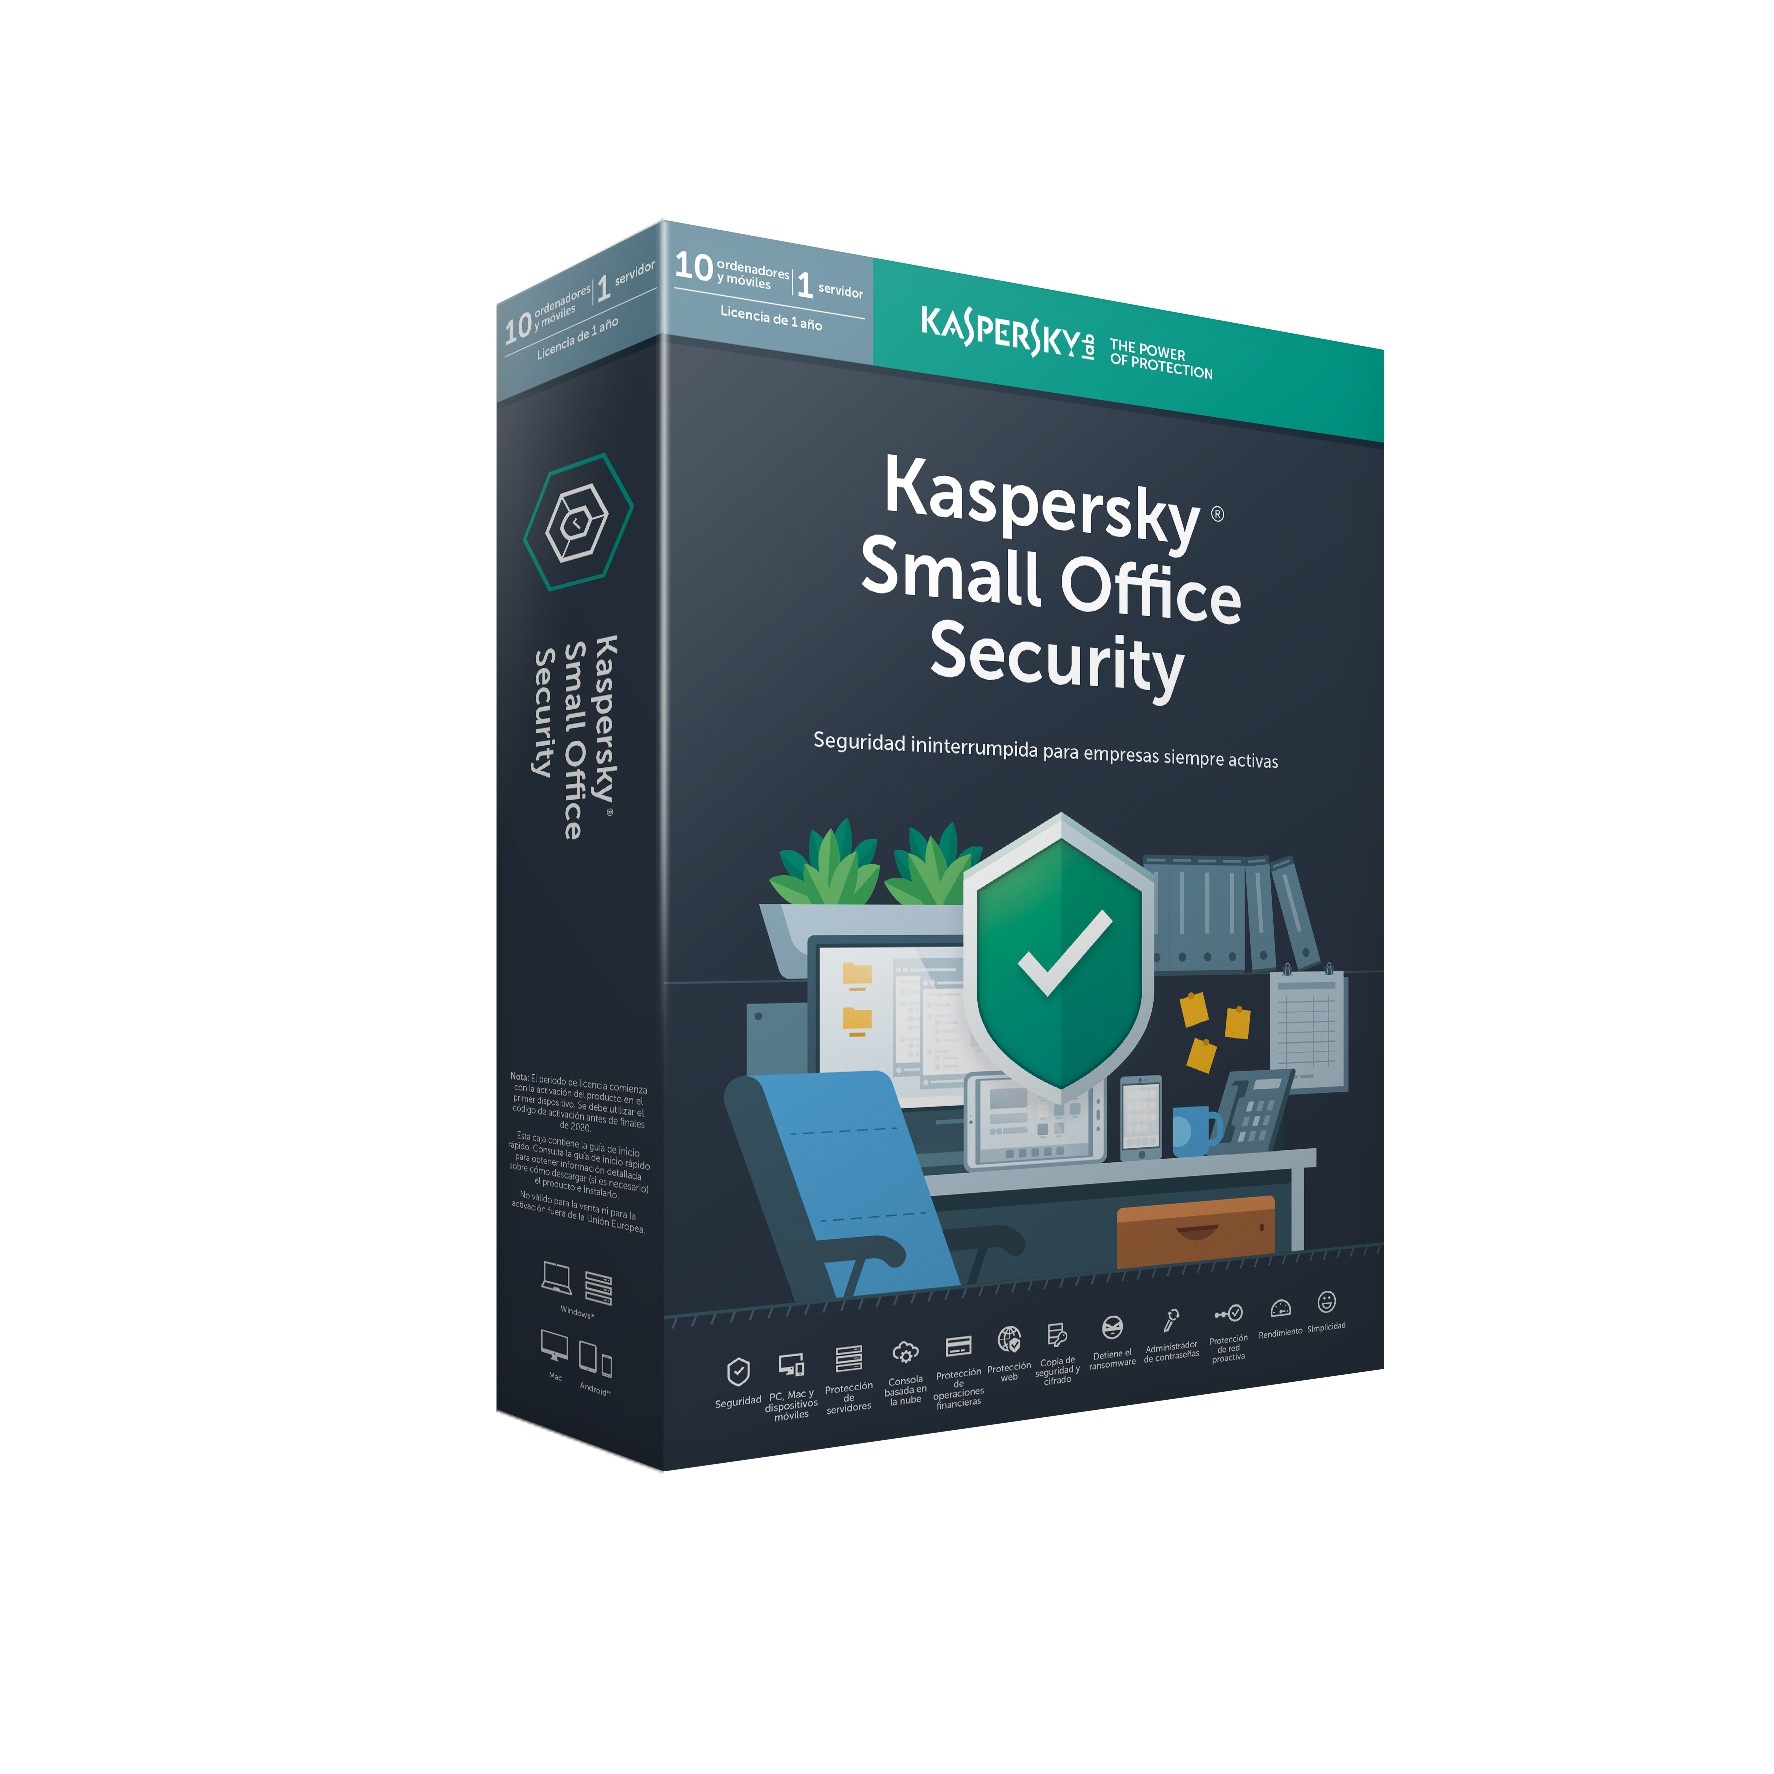 SOFTWARE ANTIVIRUS KASPERSKY SMALL OFFICE SECURITY 6.0 SERVIDOR + 10 PC